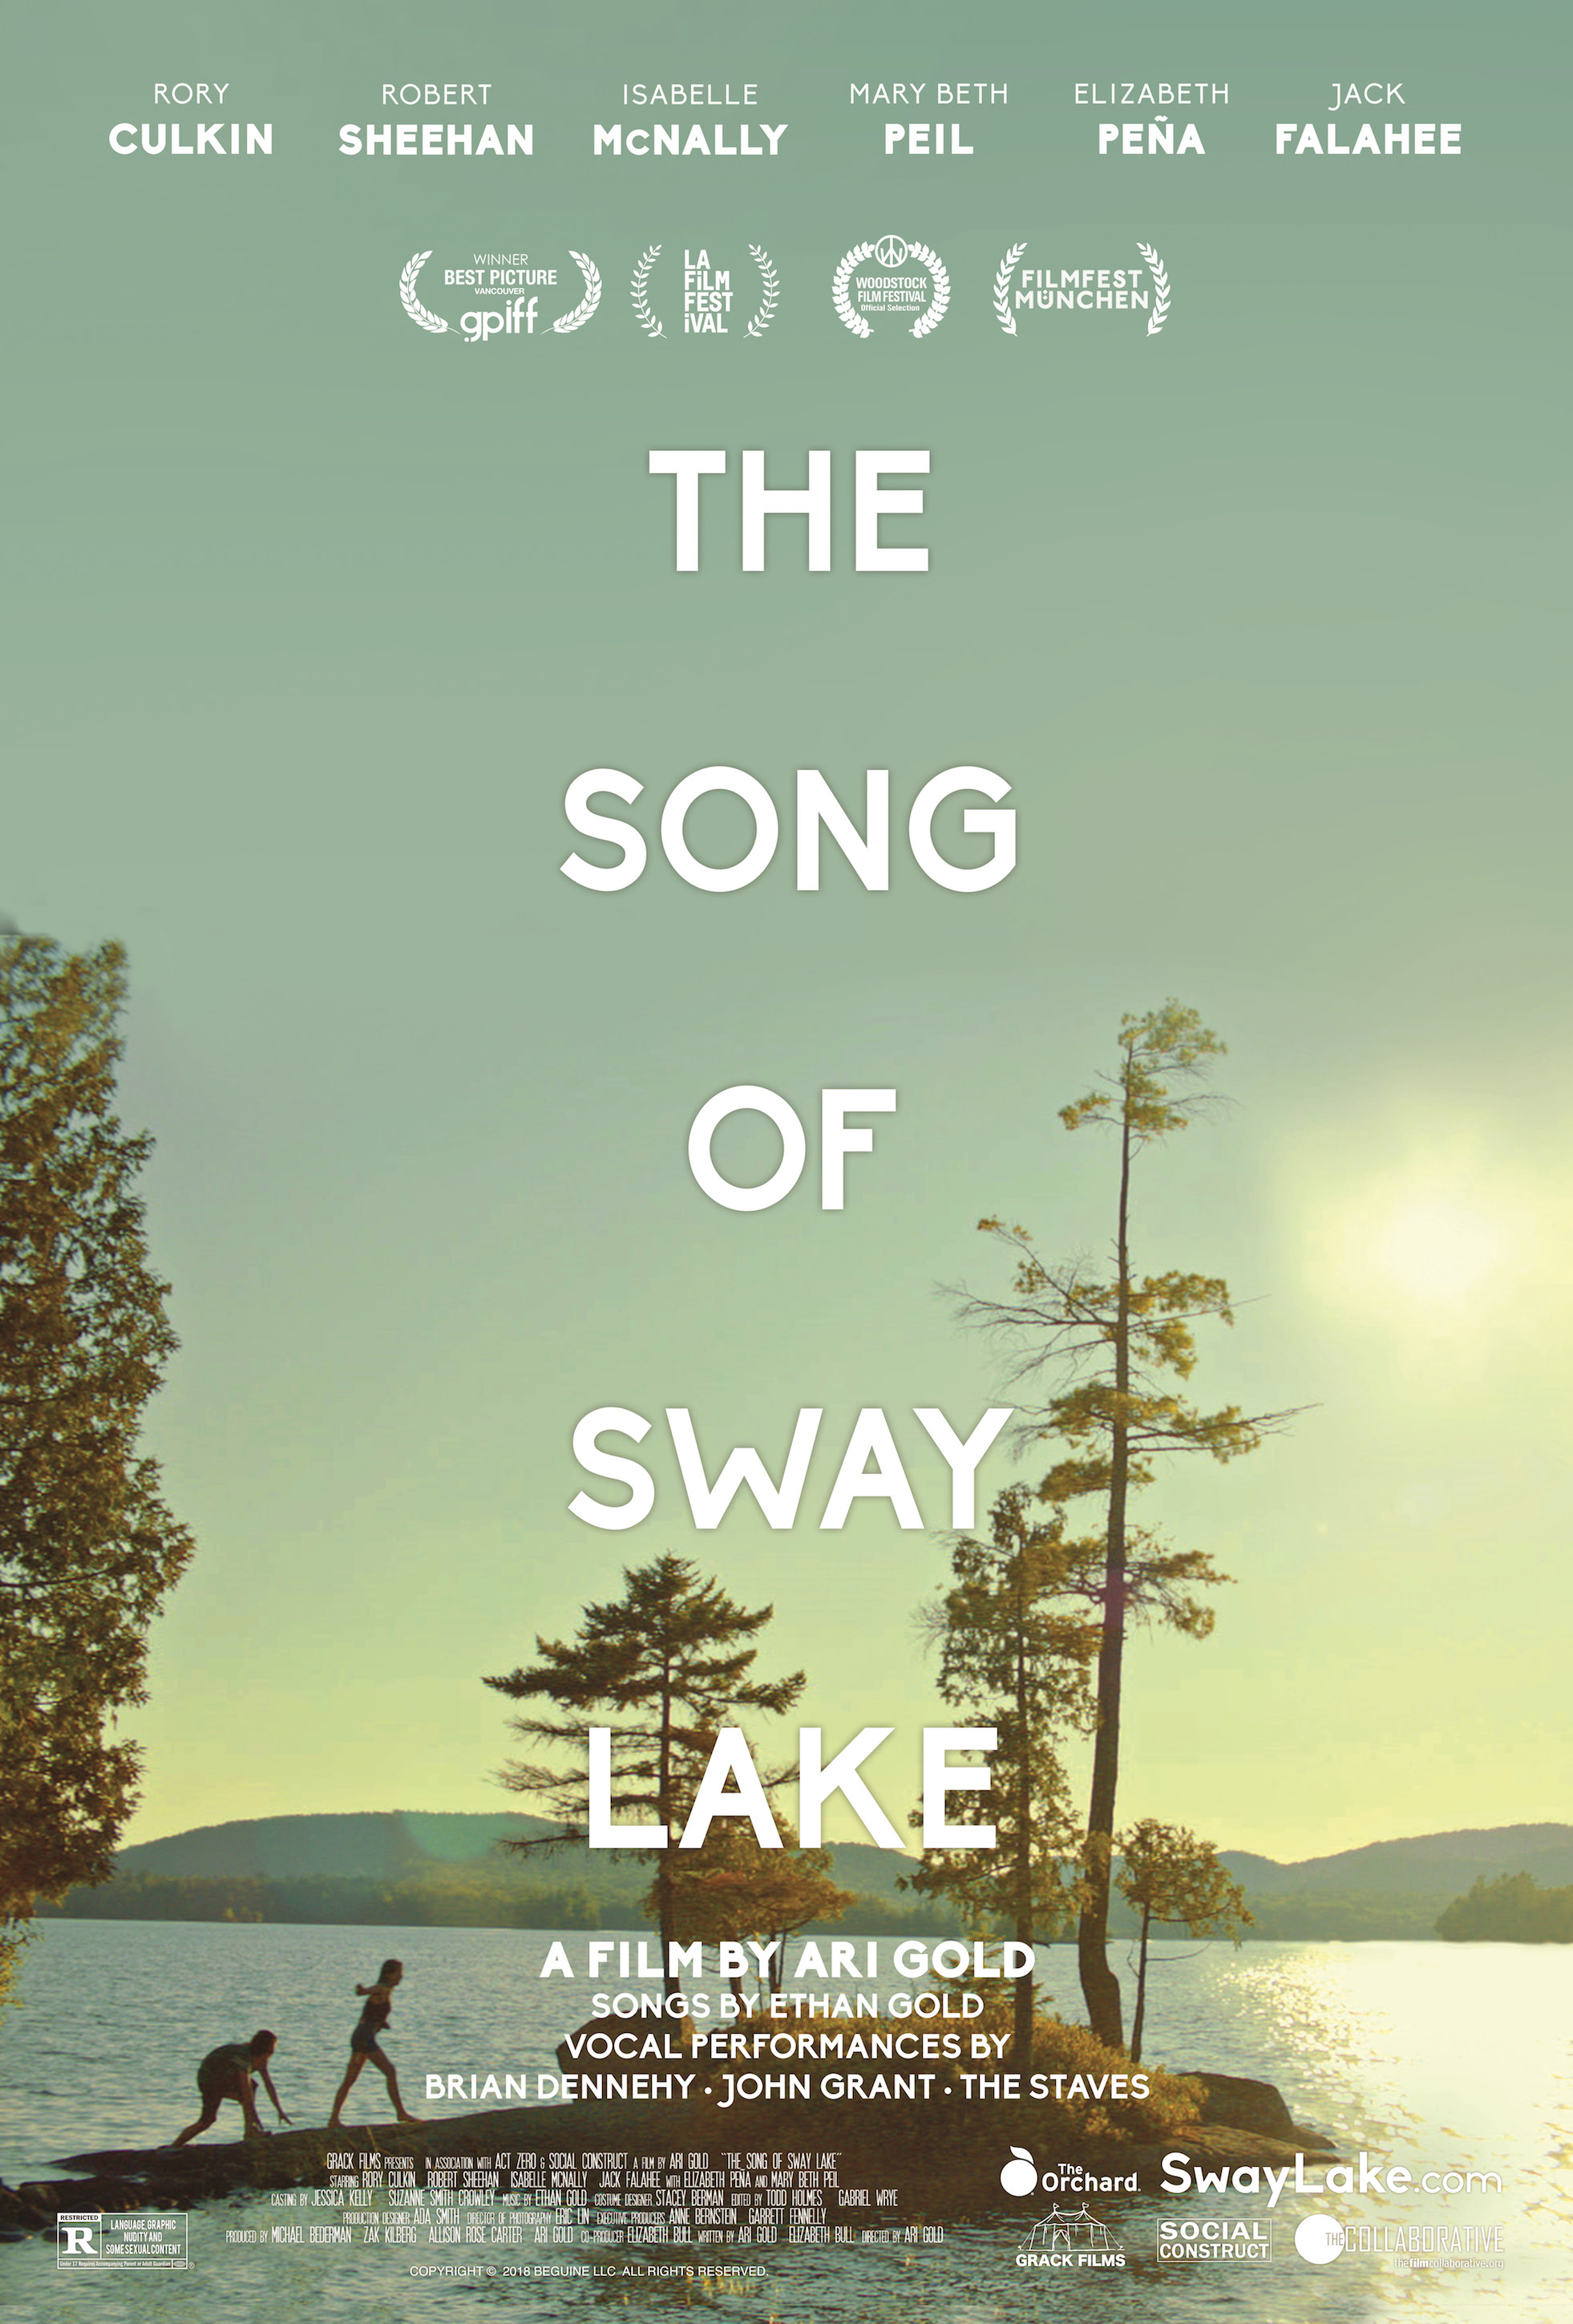 The Song of Sway Lake US Poster.jpg